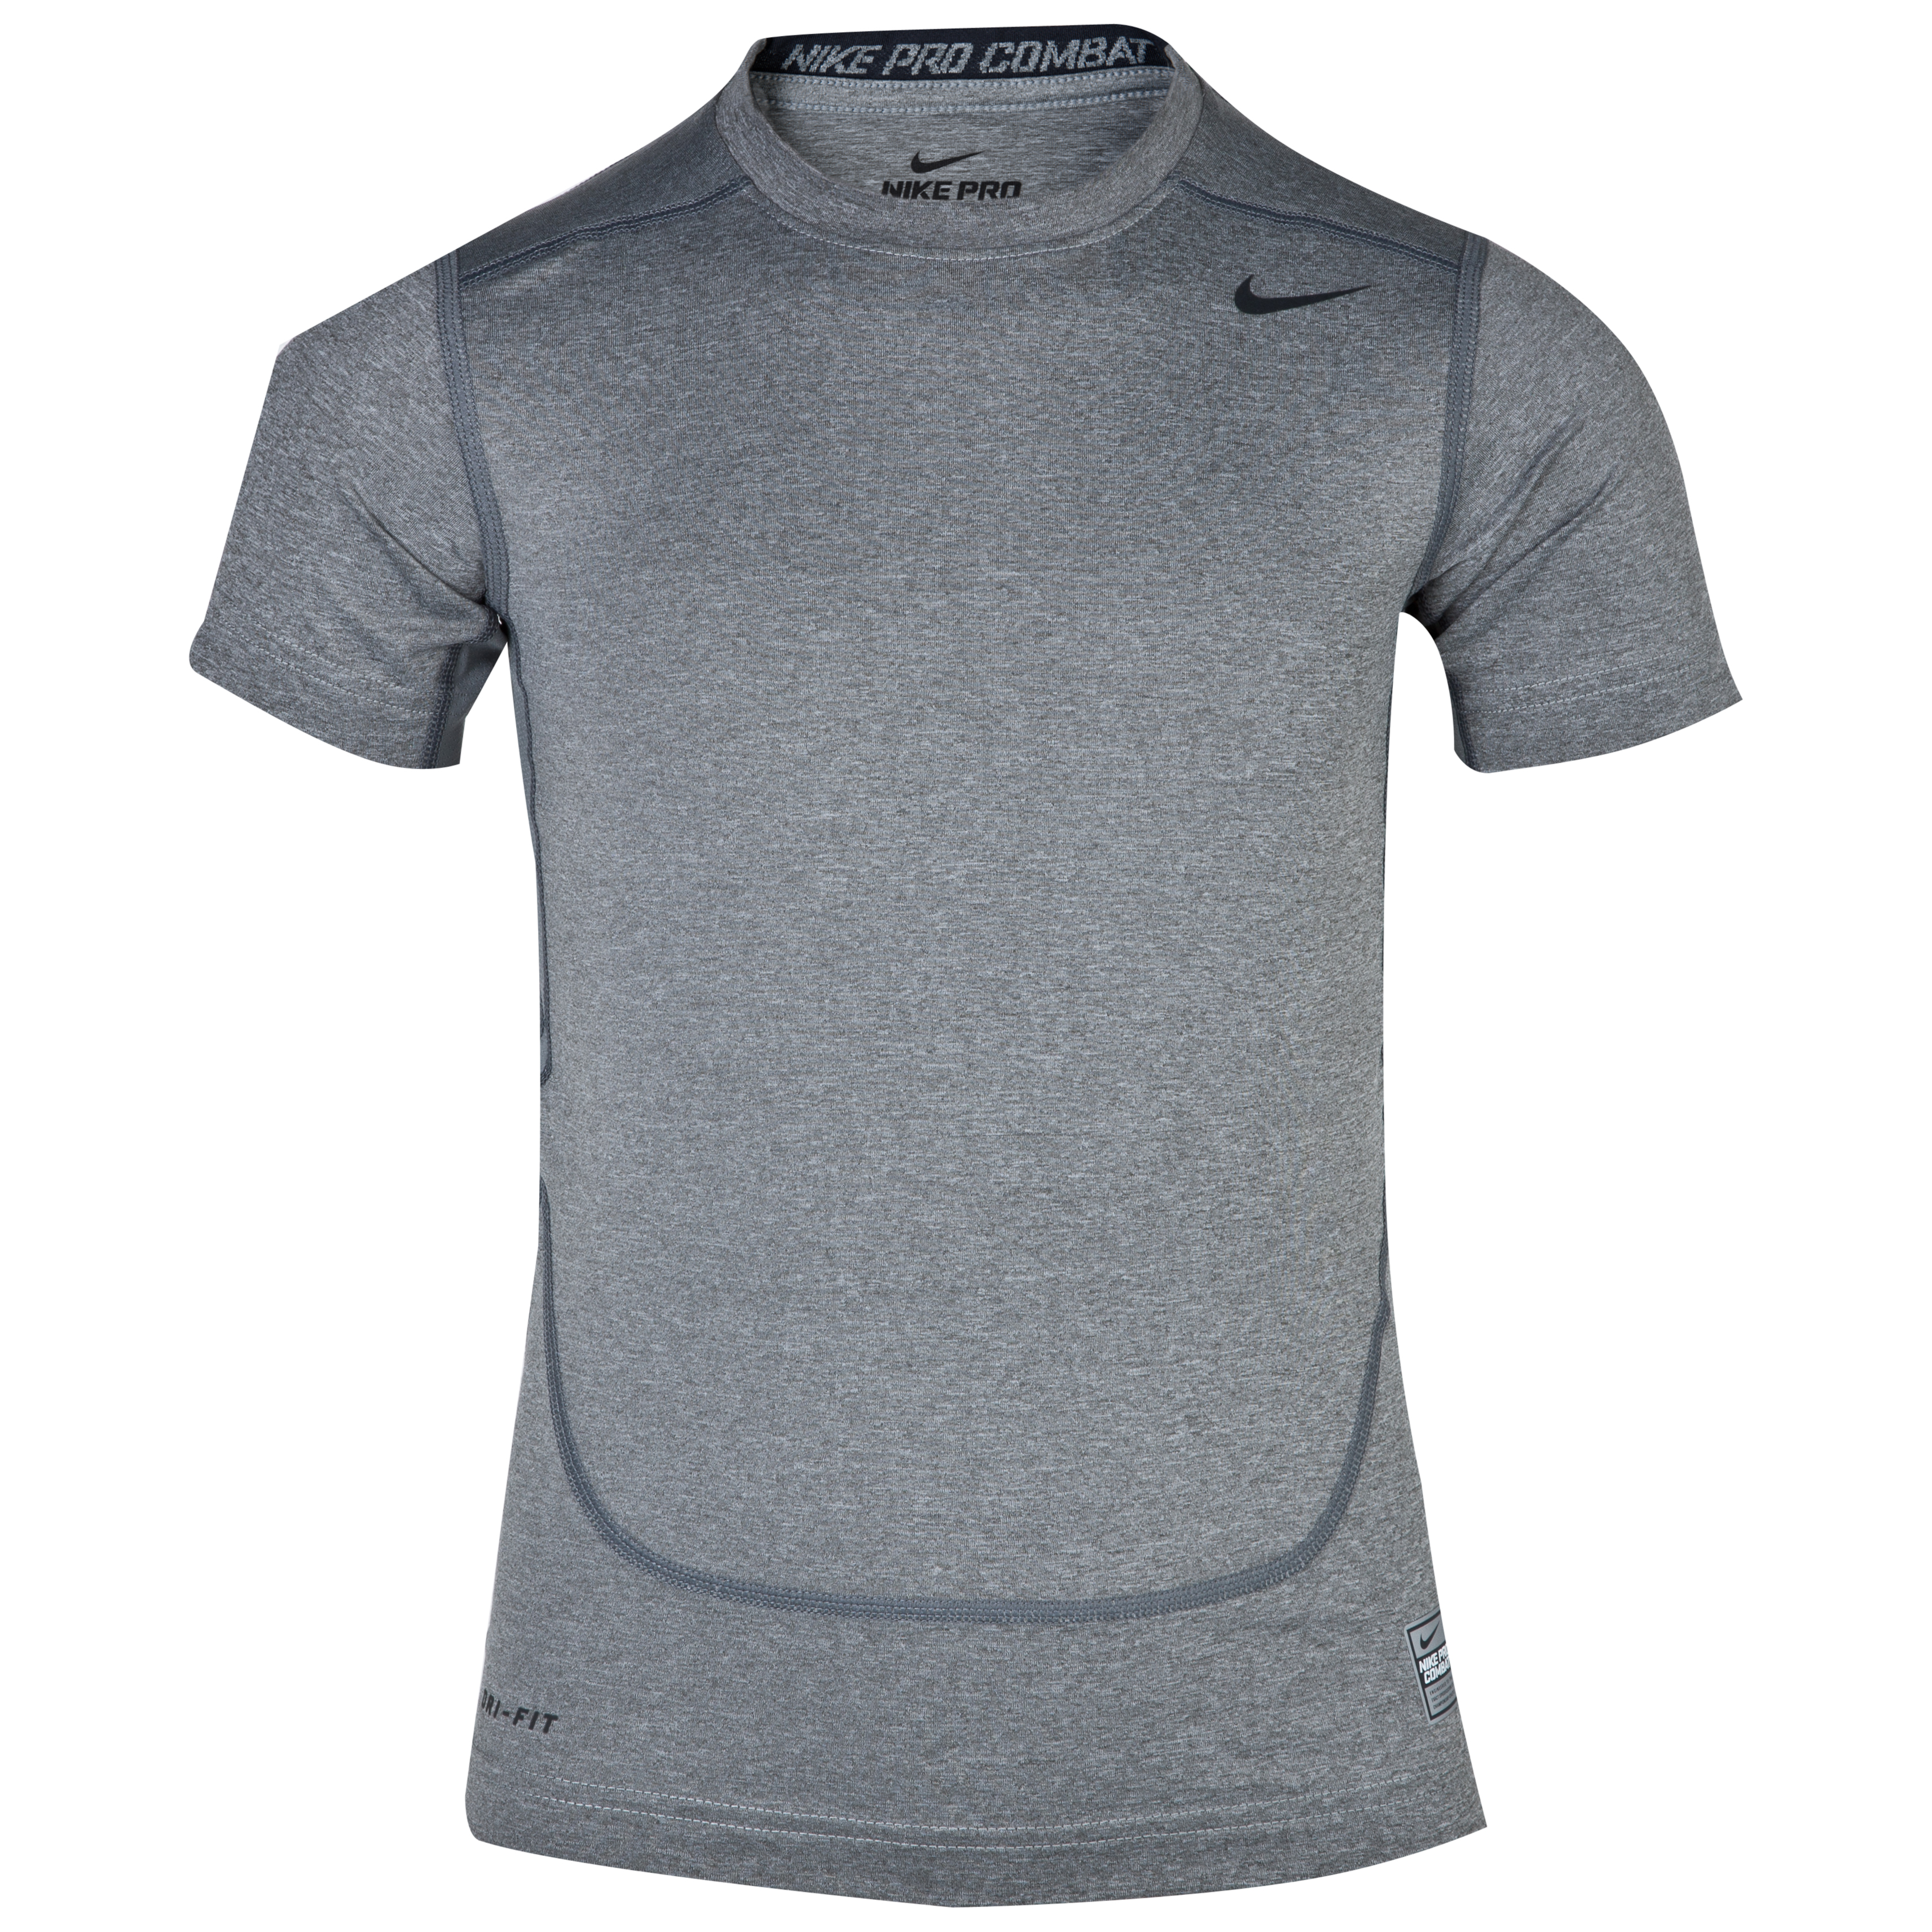 Nike Pro Combat Core Base Layer Top - Kids - Carbon Heather/Black Grey